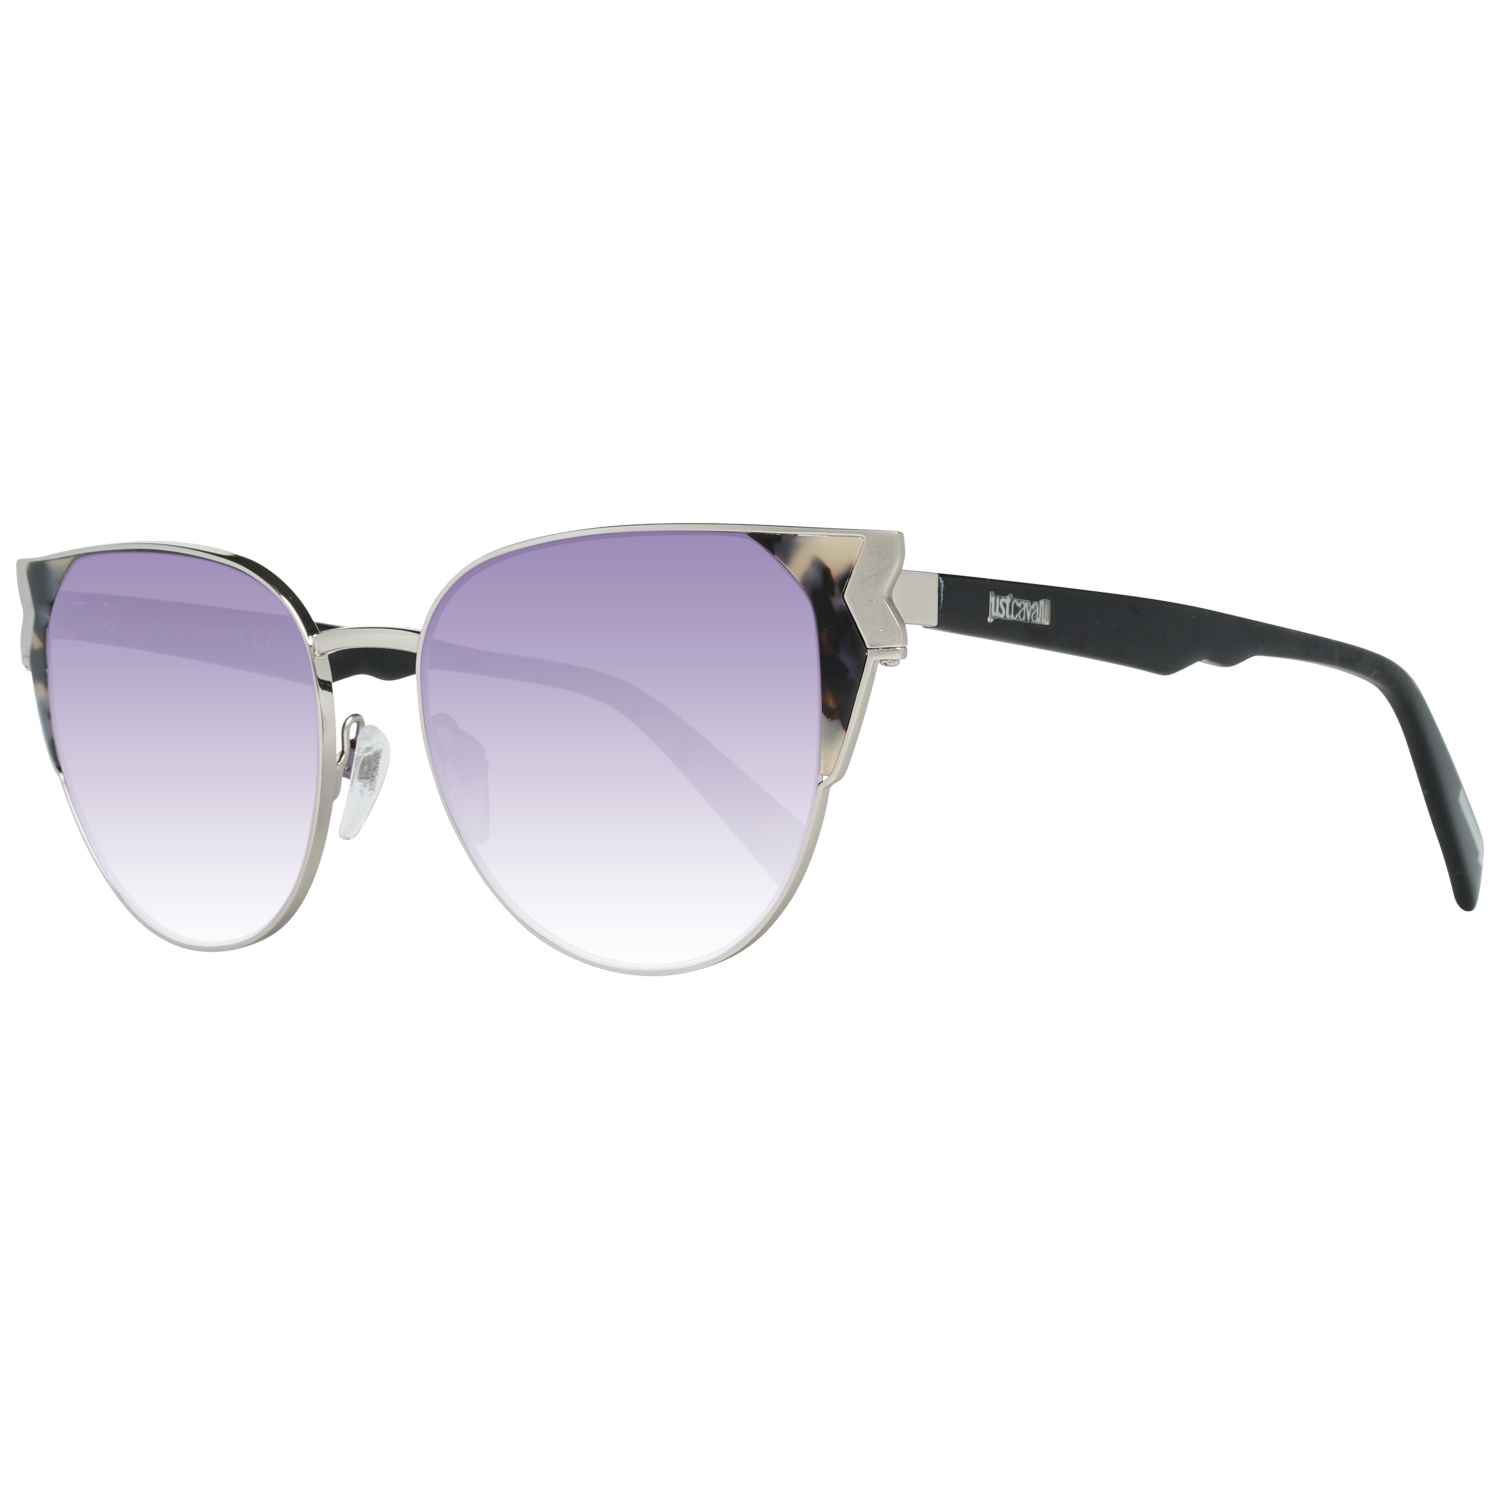 Just Cavalli Sunglasses JC825S 56Z 53 Women Silver